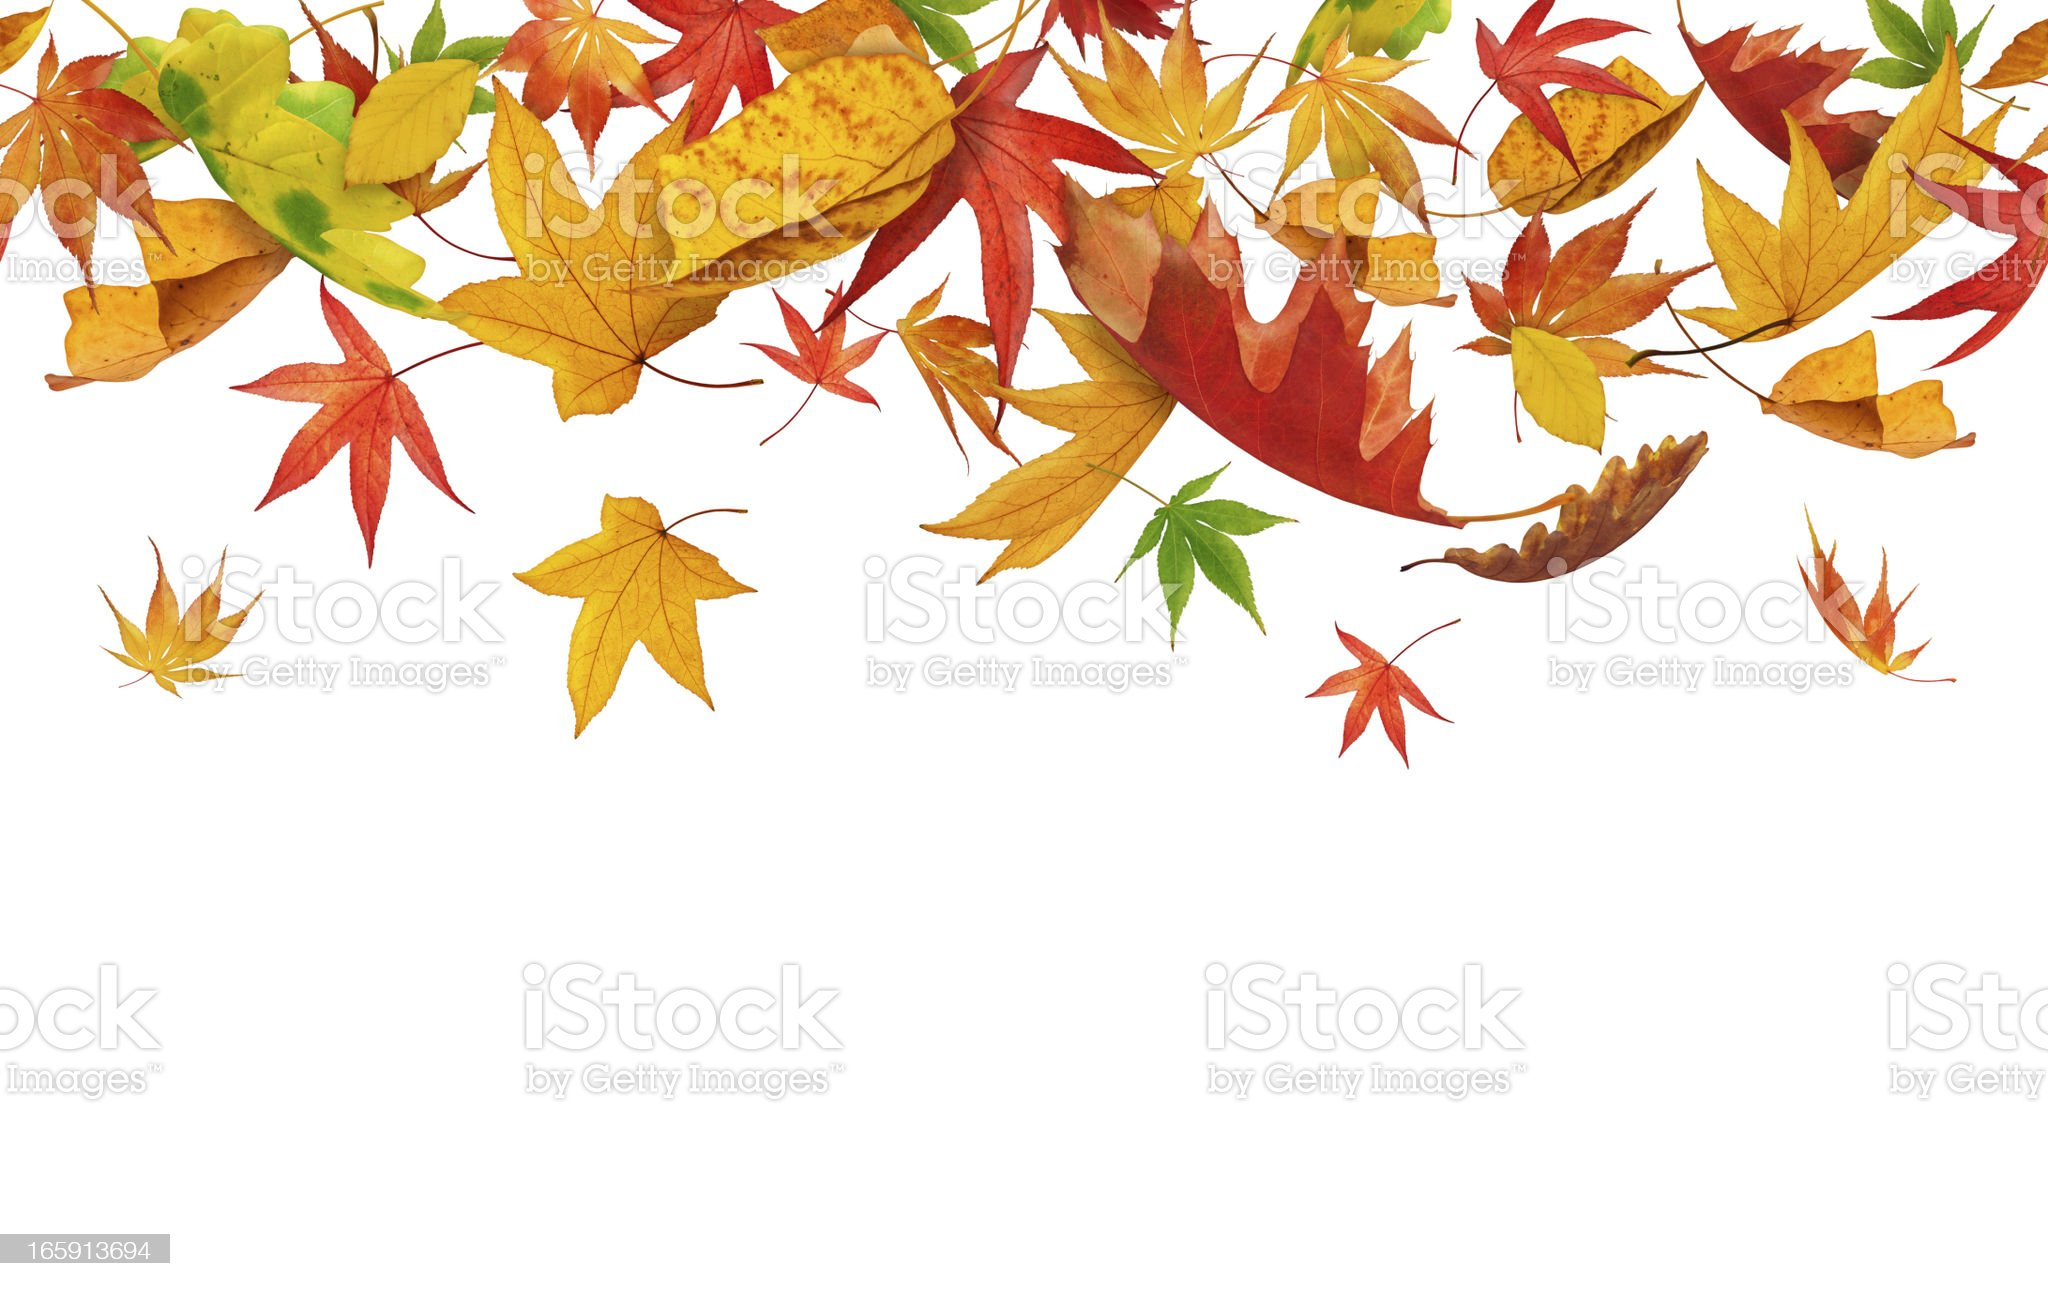 Seamless Falling Autumn Leaves royalty-free stock photo